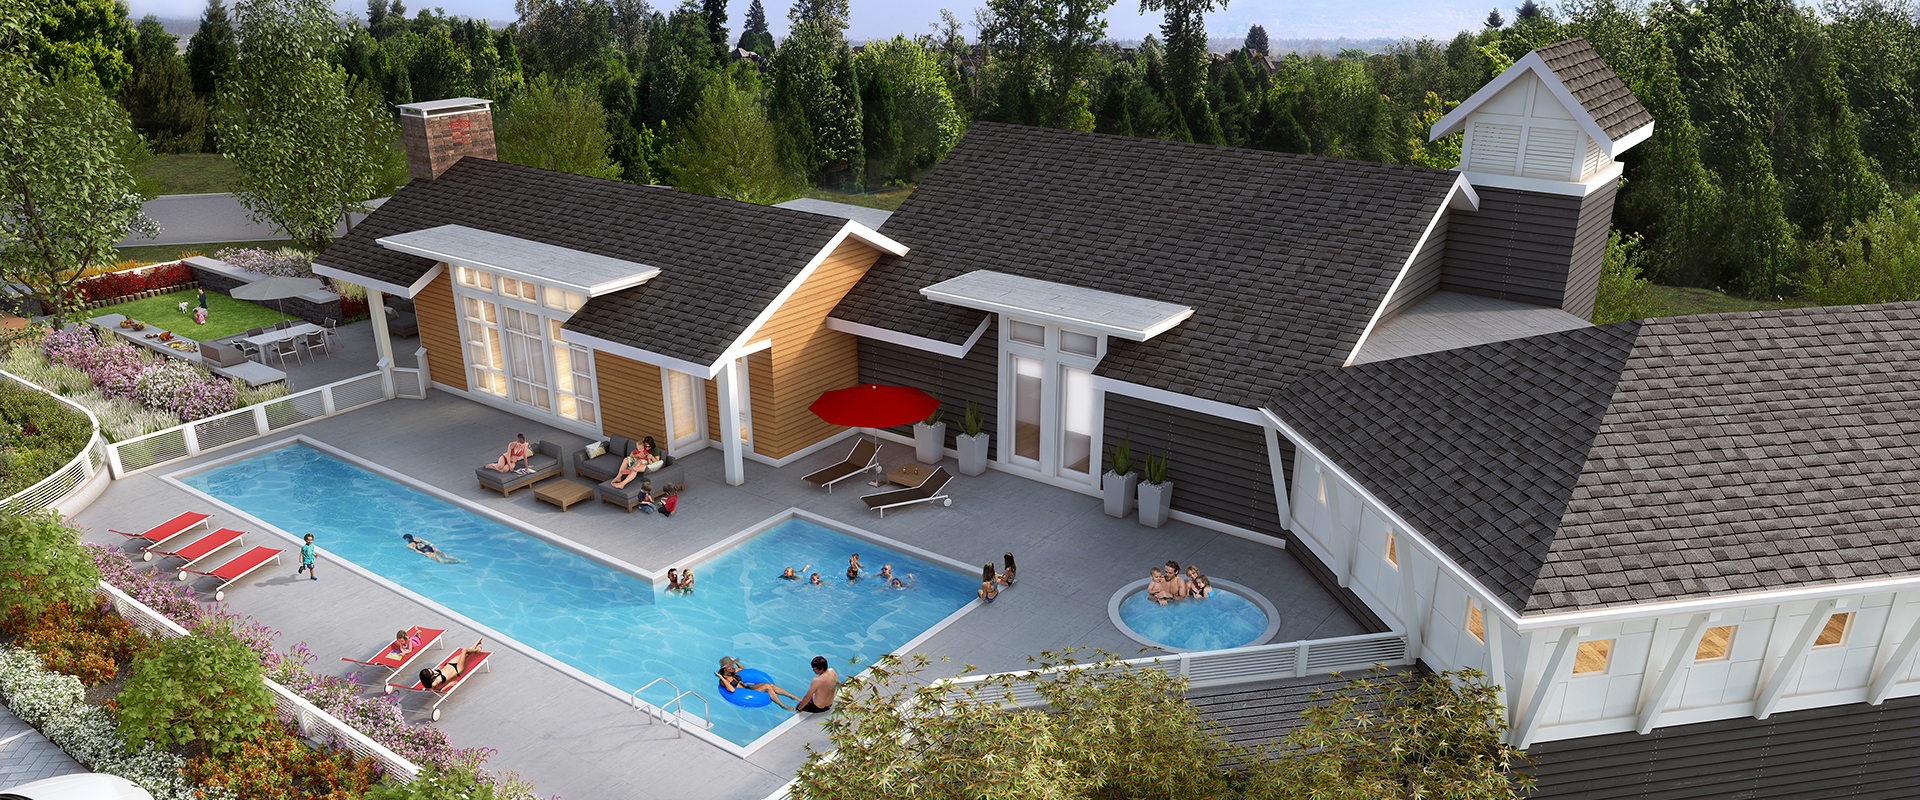 This relaxing clubhouse could be yours to enjoy at South Surrey townhomes South Ridge Club